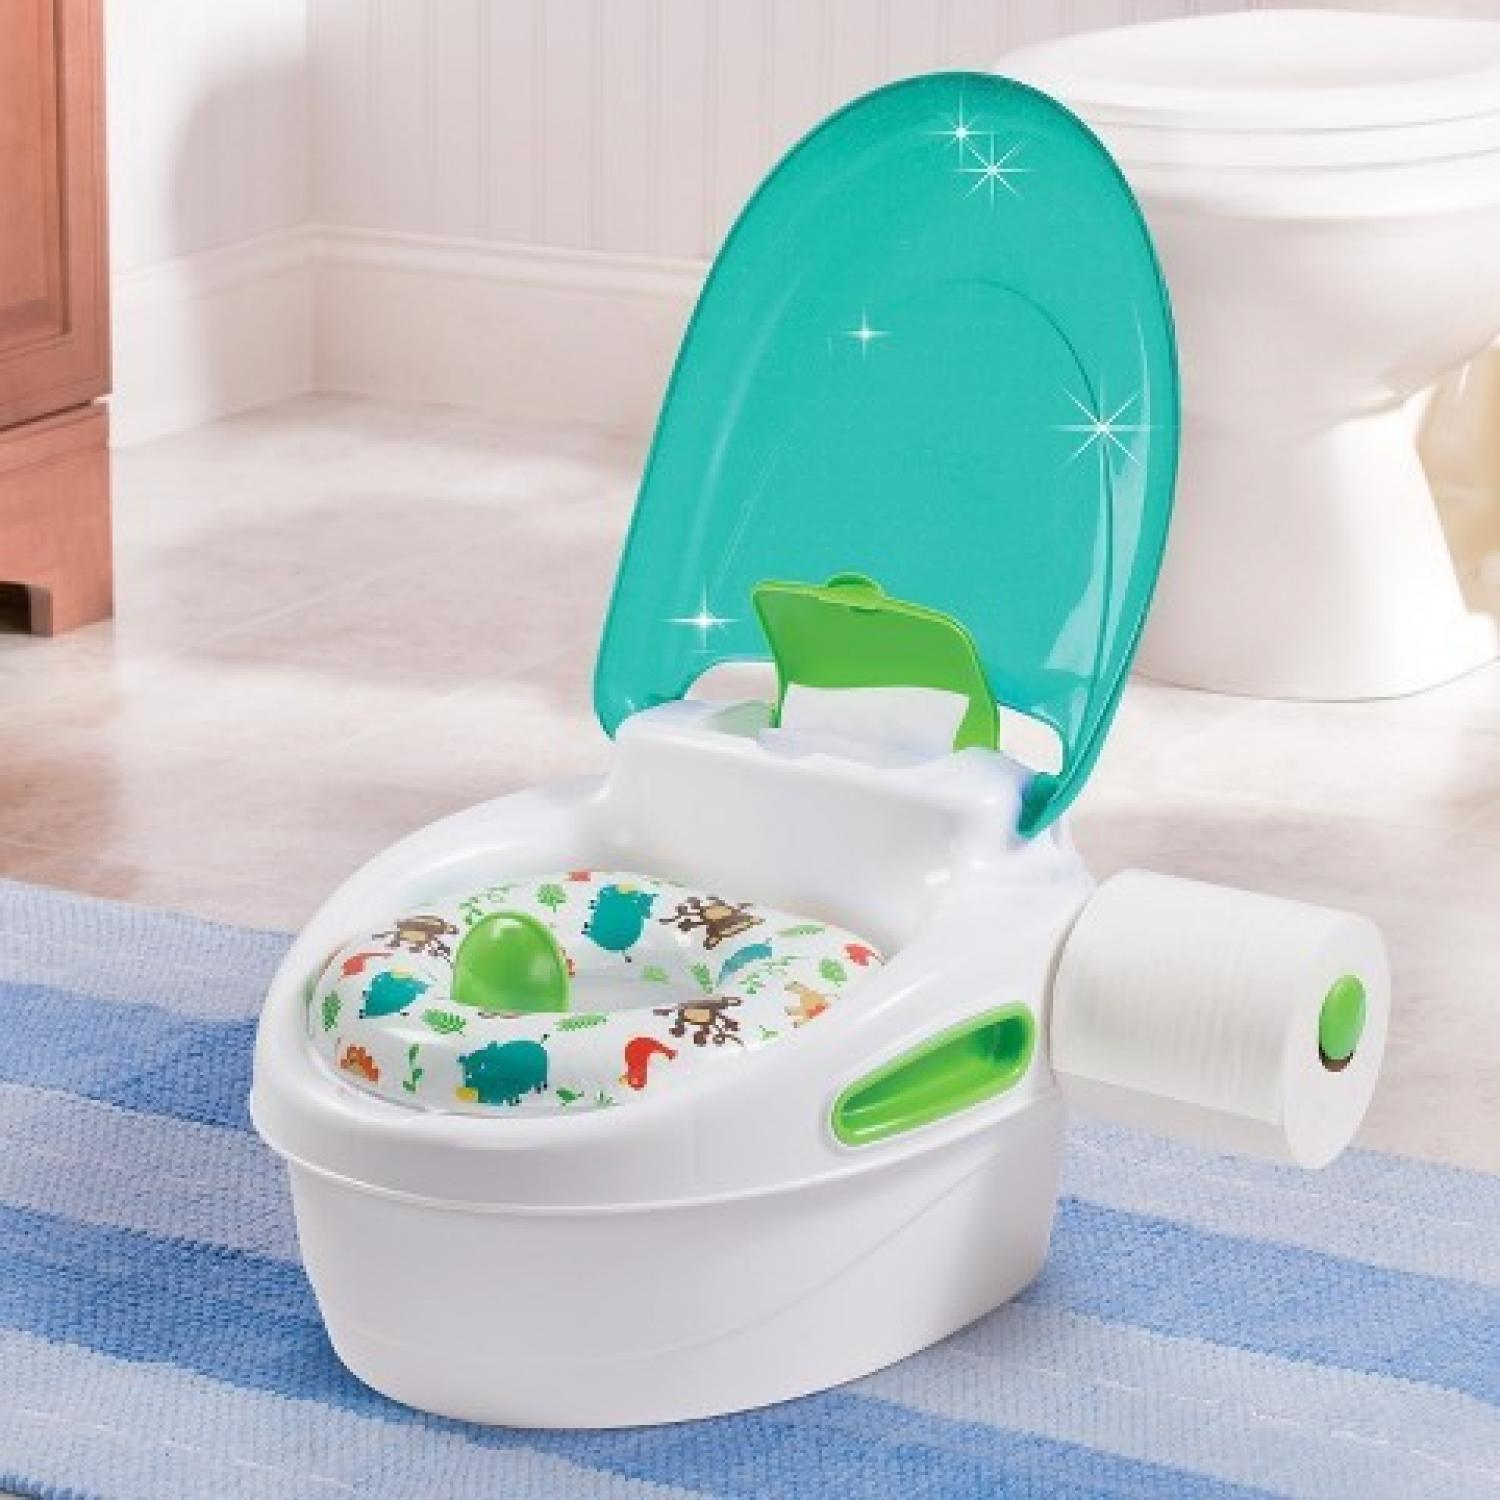 & Best Potty Training Products | Parenting islam-shia.org